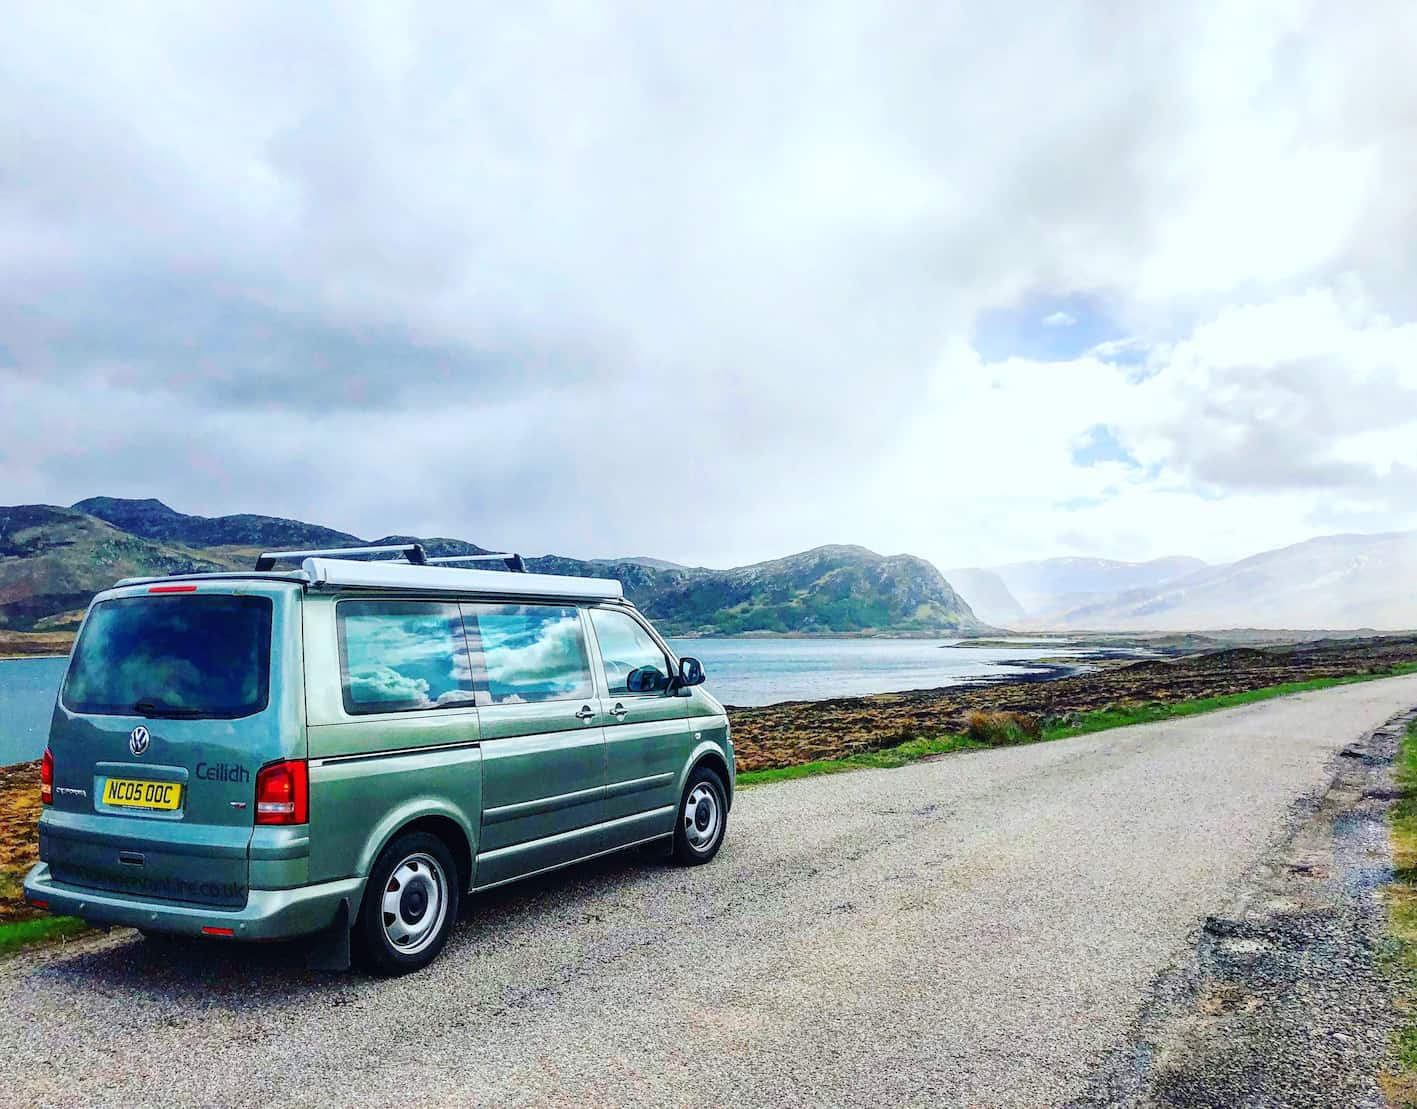 Campervan Hire Inverness - drive the NC500 in style - The